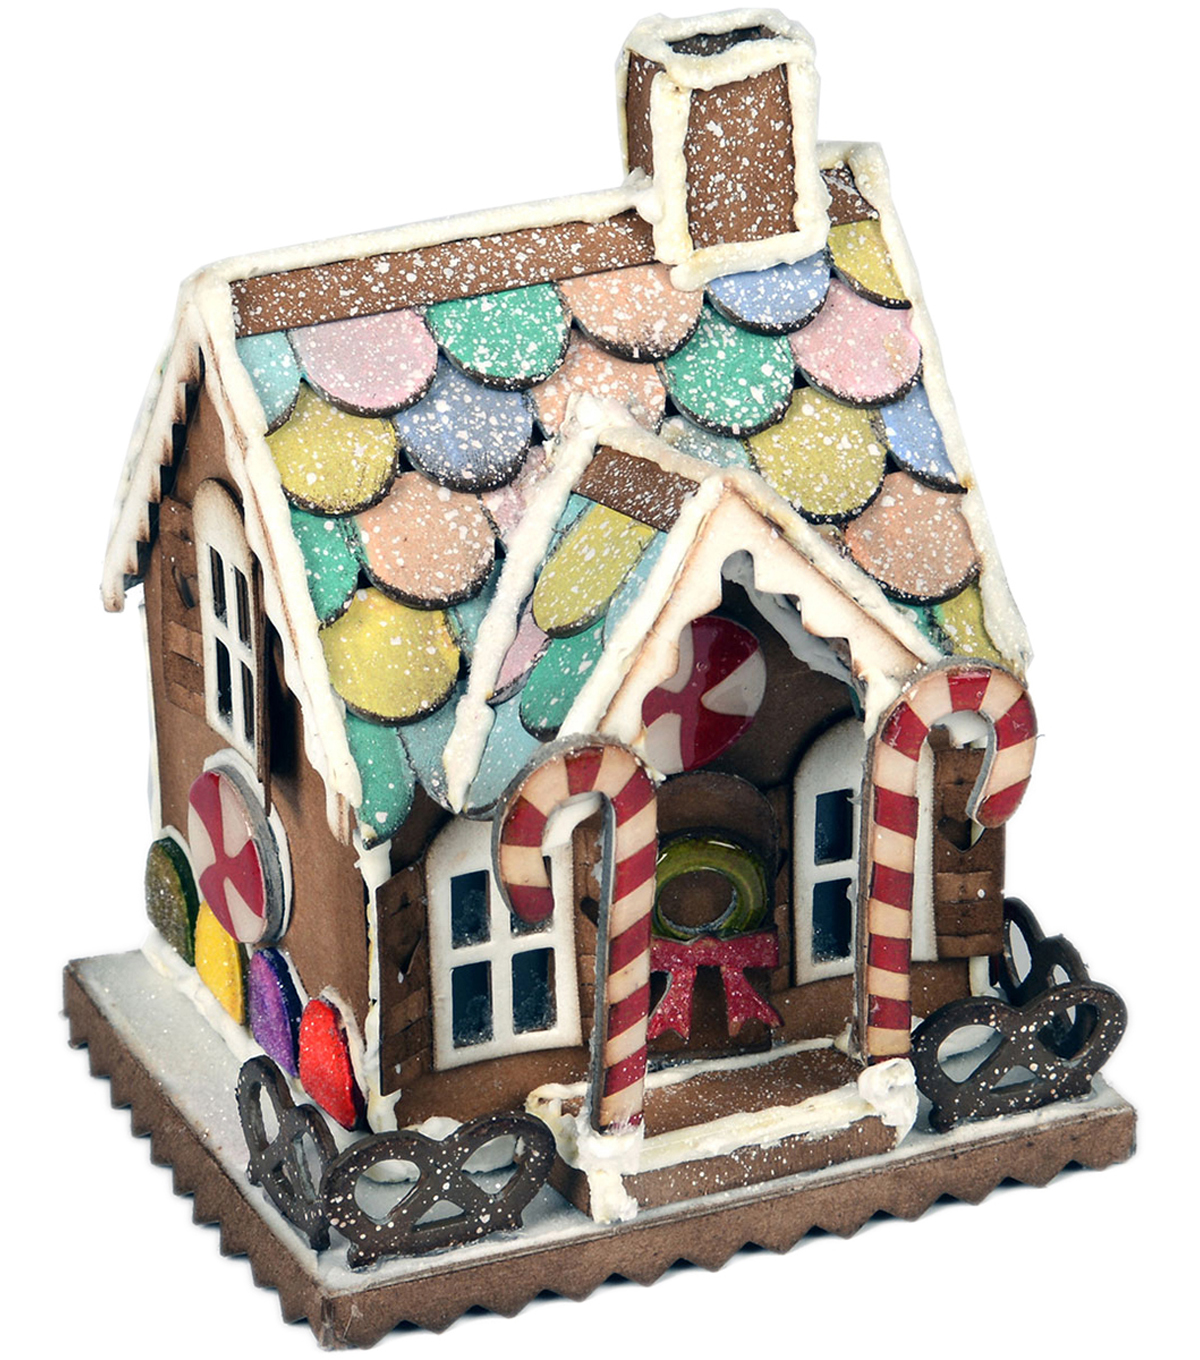 Sizzix Bigz Tim Holtz Alterations Die-Village Gingerbread